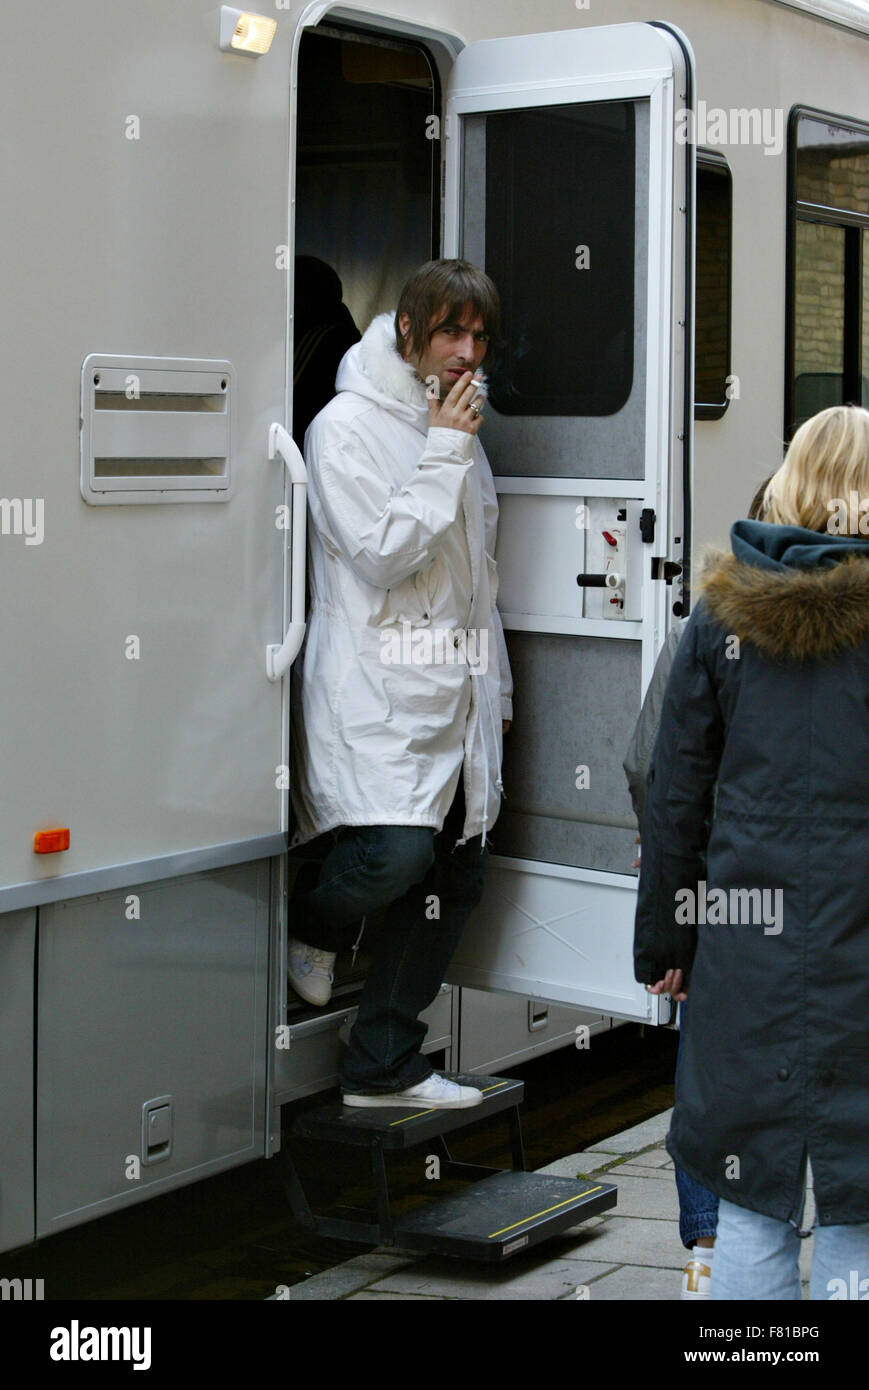 Liam Gallagher Leaving trailer making video for Heathen Chemistry, Little By Little, city of London (credit image© - Stock Image